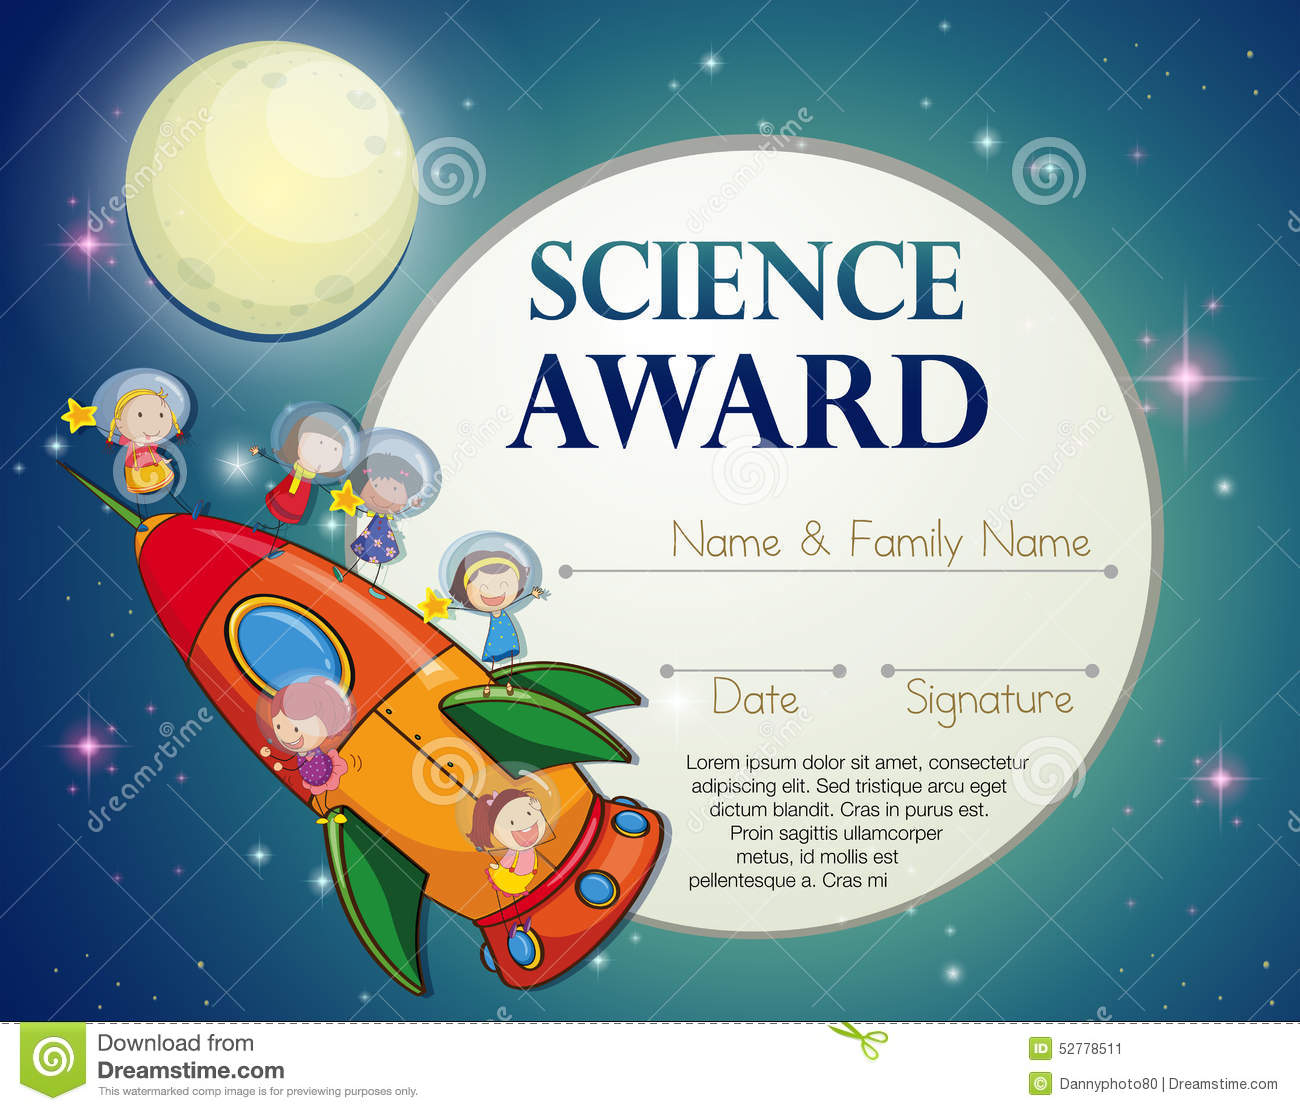 Science fair certificate template pasoevolist science fair certificate template yadclub